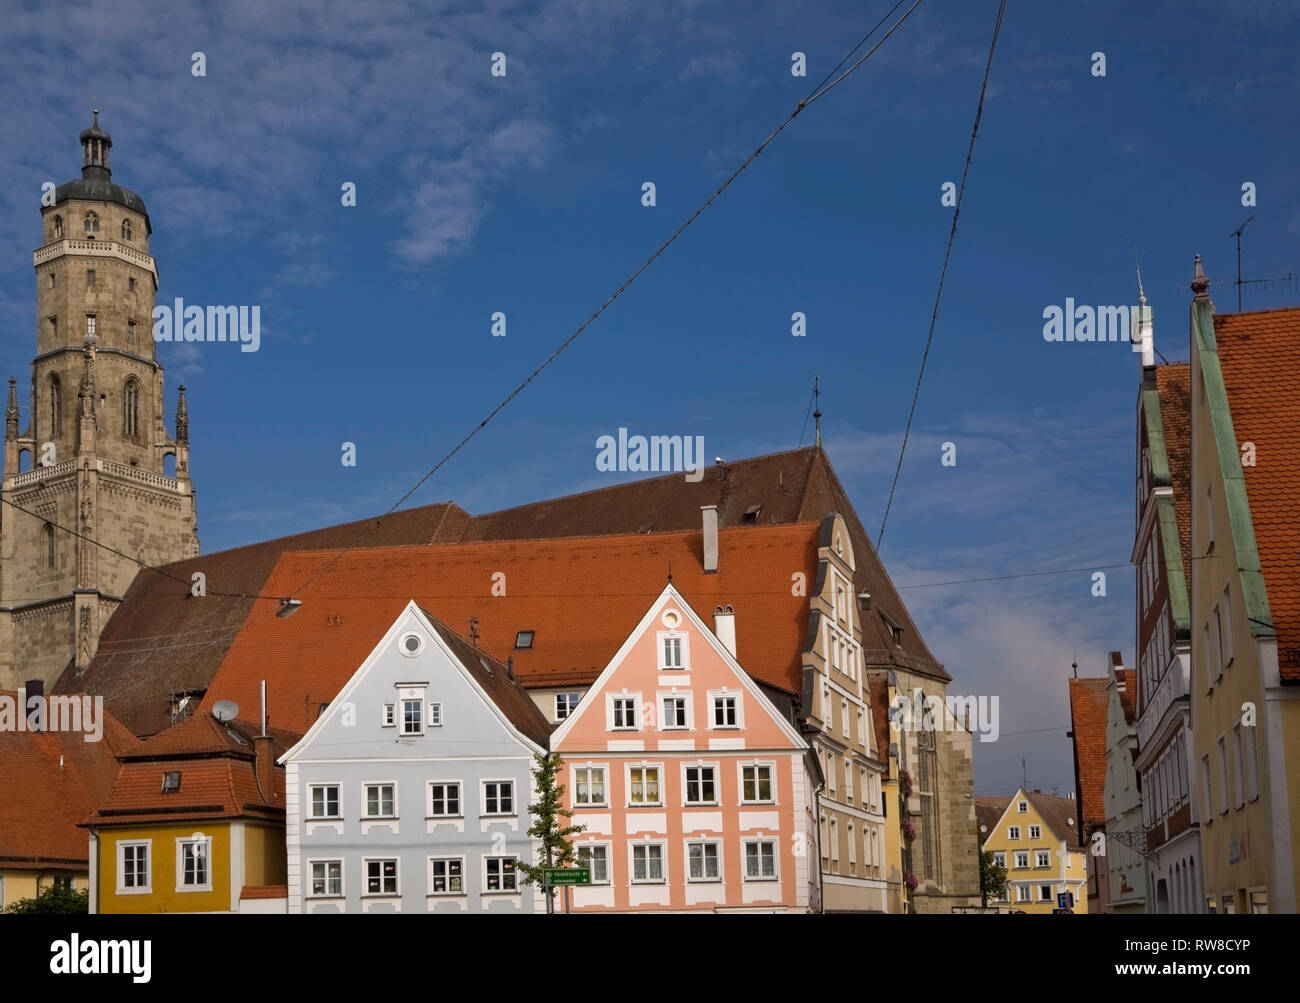 Church tower and buildings in the medieval town of Nordlingen, Bavaria, Germany - Stock Image